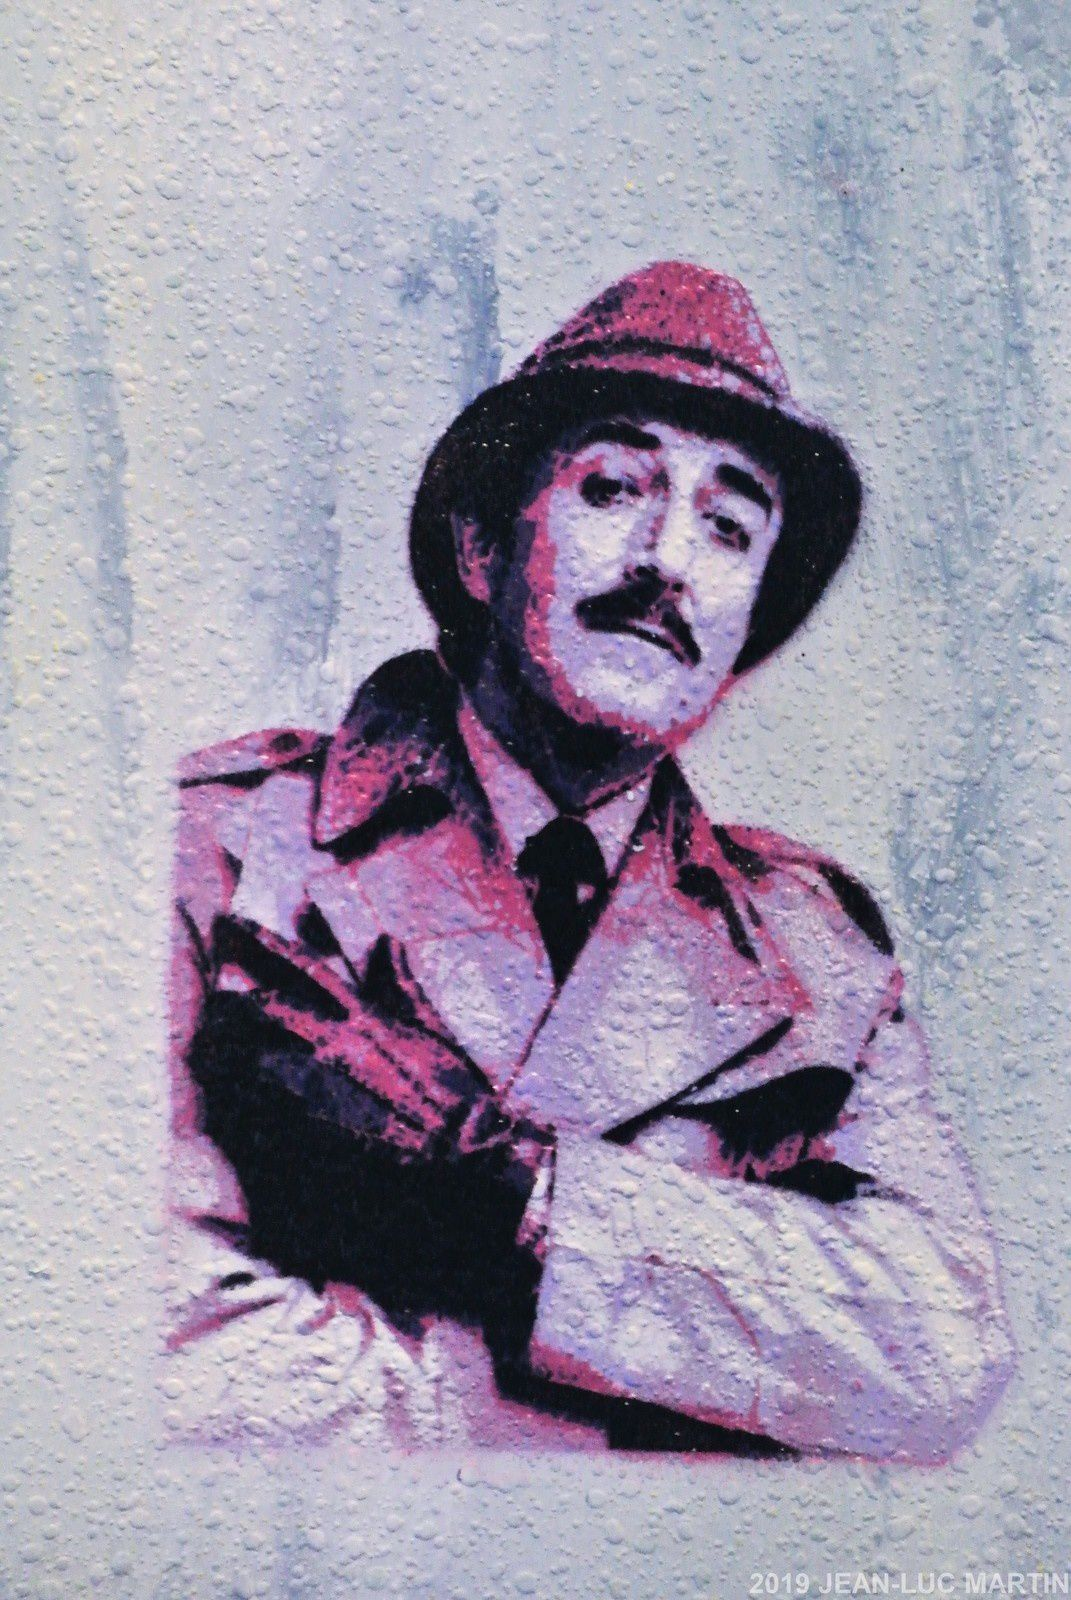 HENRI MANCINI: THE PINK PANTHER THEME AND INSPECTOR JACQUES CLOUSEAU